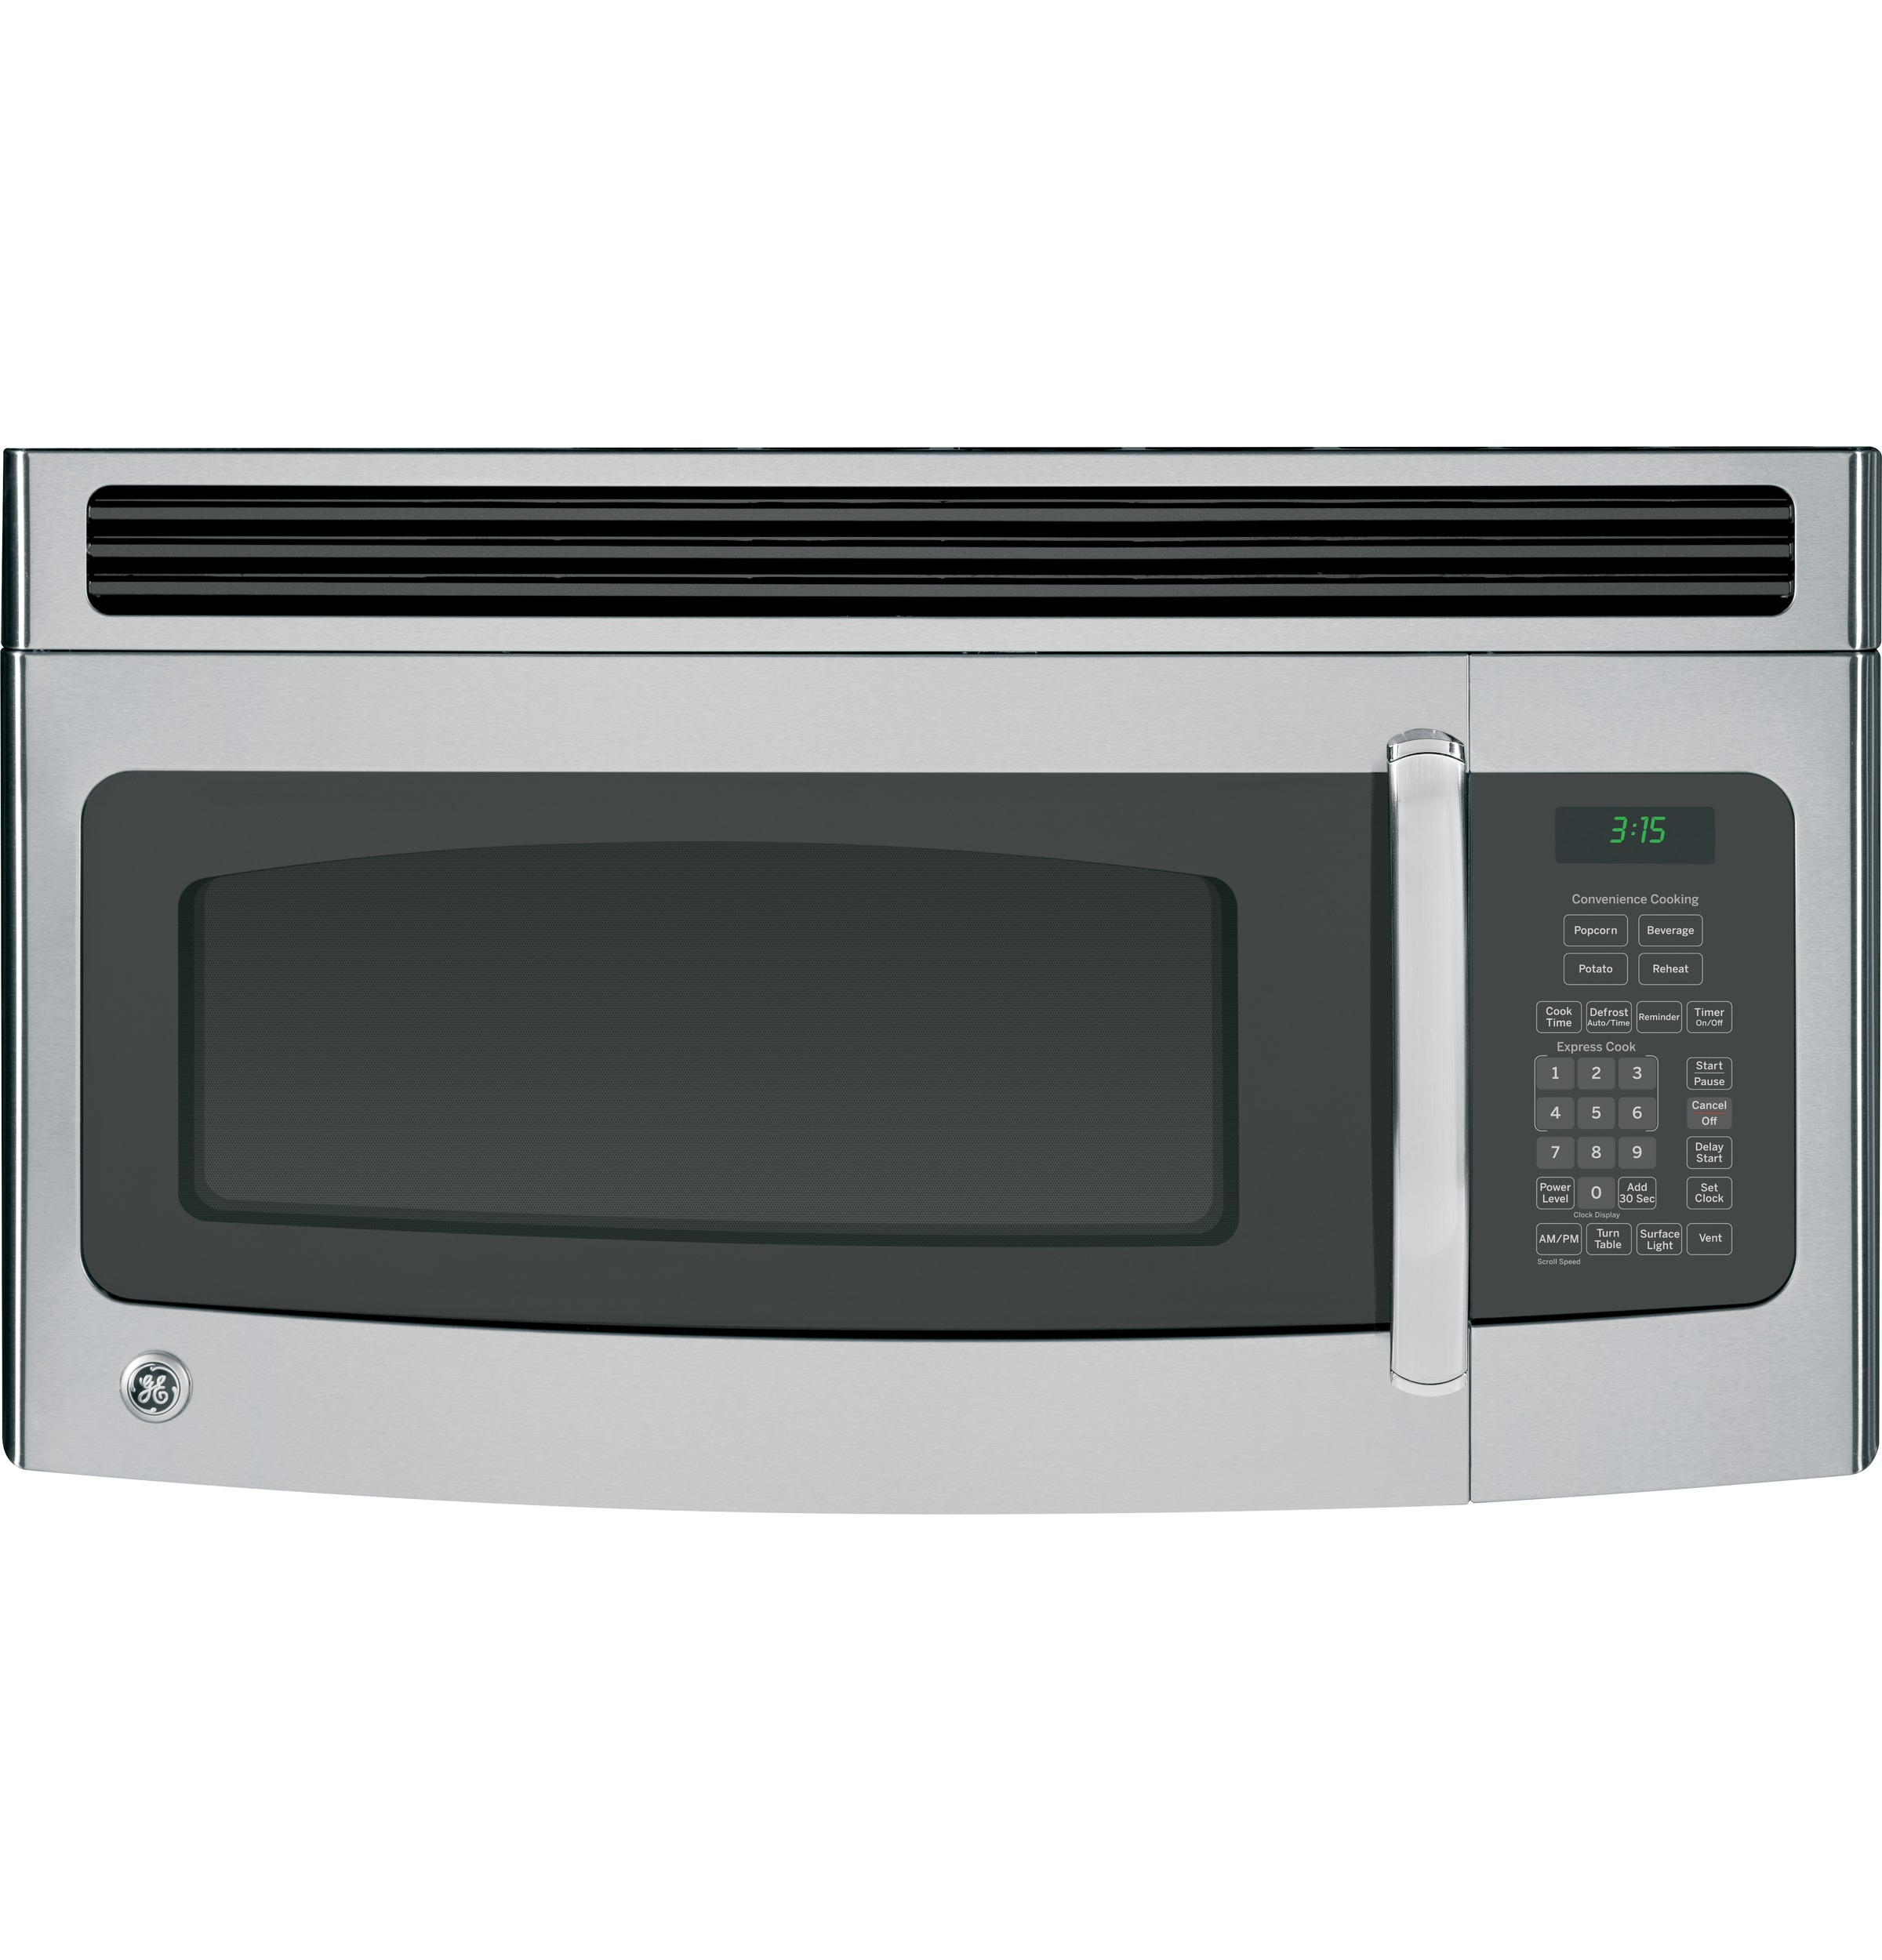 Ge Microwave Ovens ~ Ge cu ft over the range microwave oven